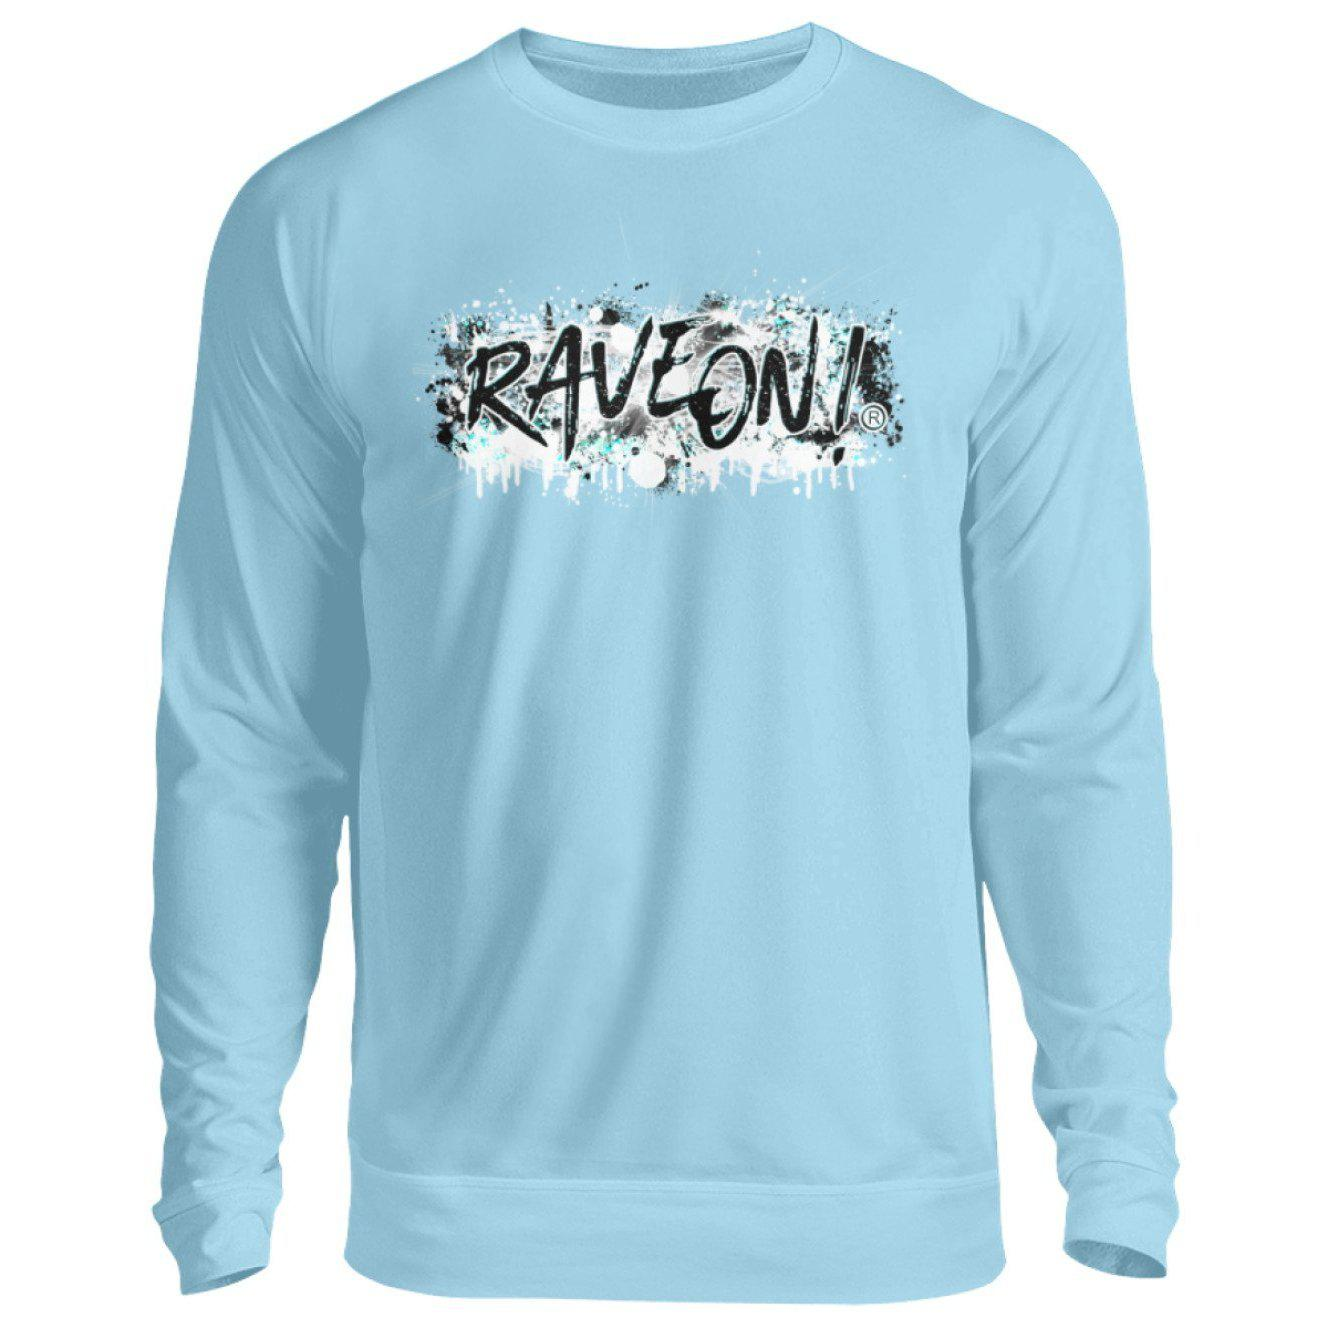 Rave On! Paint on white -Rave On!® - Unisex Pullover Unisex Sweatshirt Sky Blue / S - Rave On!® the club & techno scene shop for cool young fashion streetwear style & fashion outfits + sexy festival 420 stuff